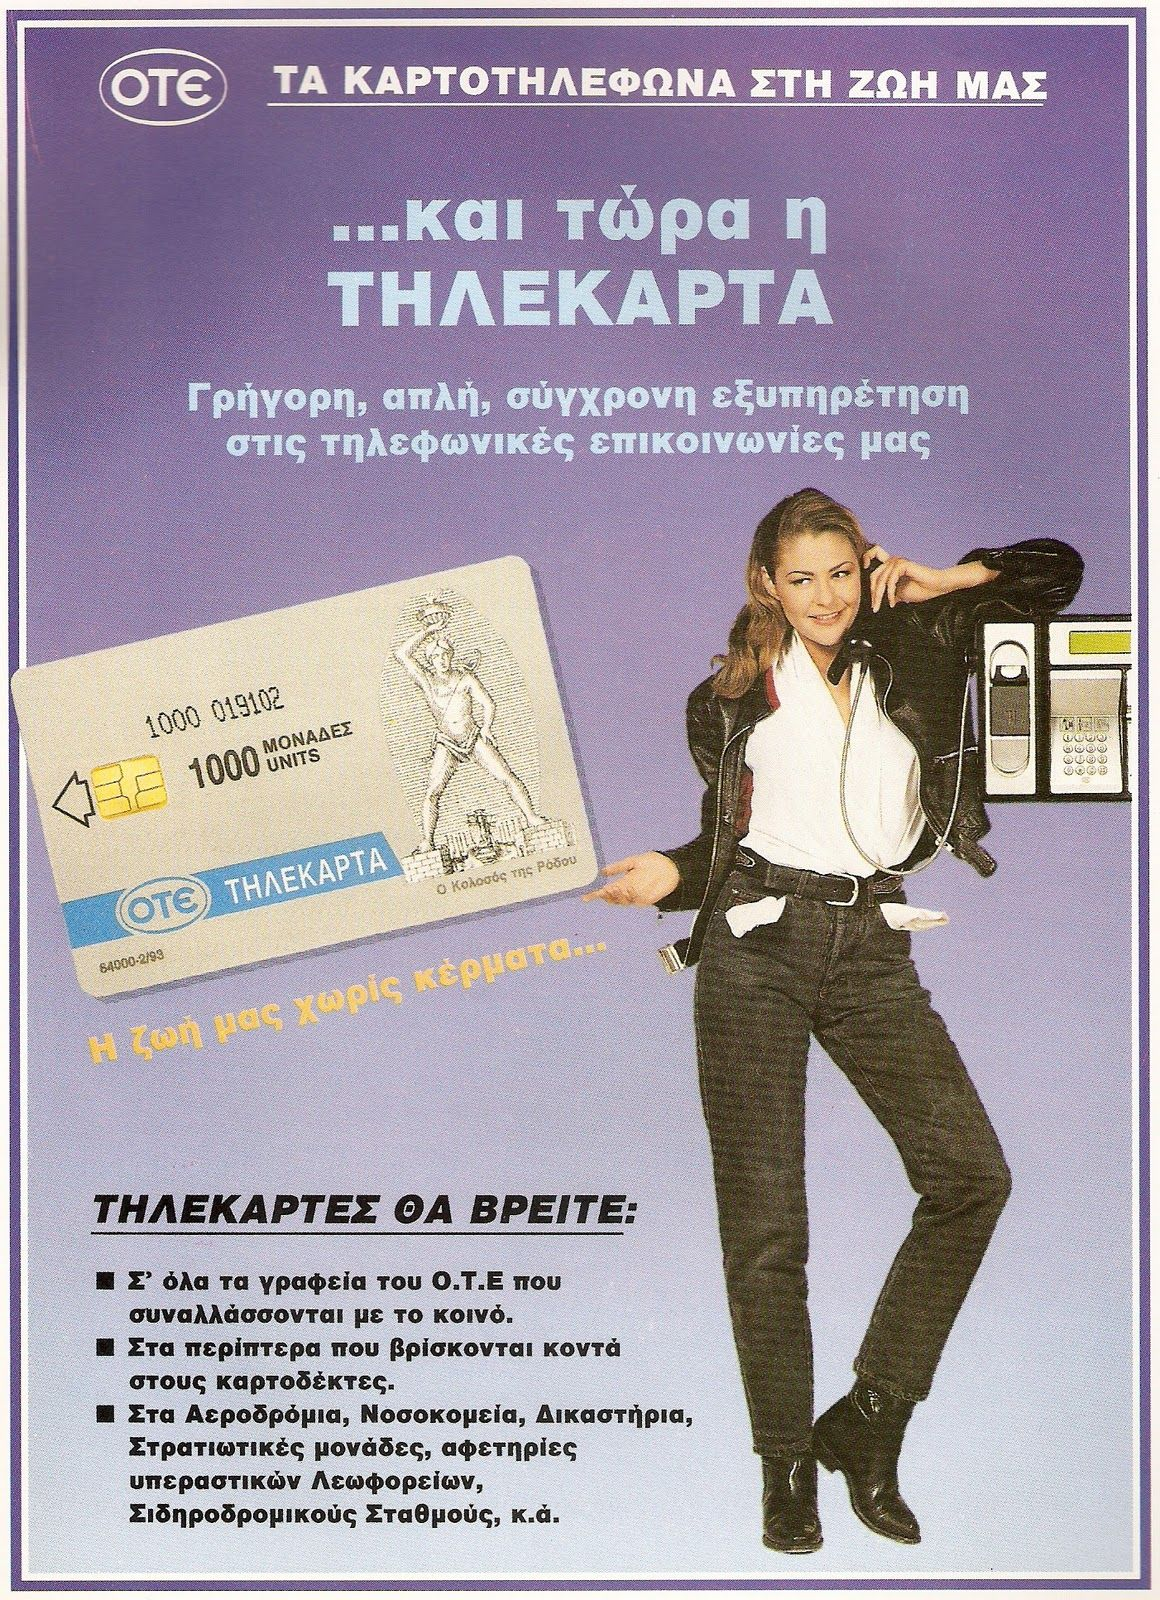 004 Pin by Mary on GREEK VINTAGE ADS in 2019